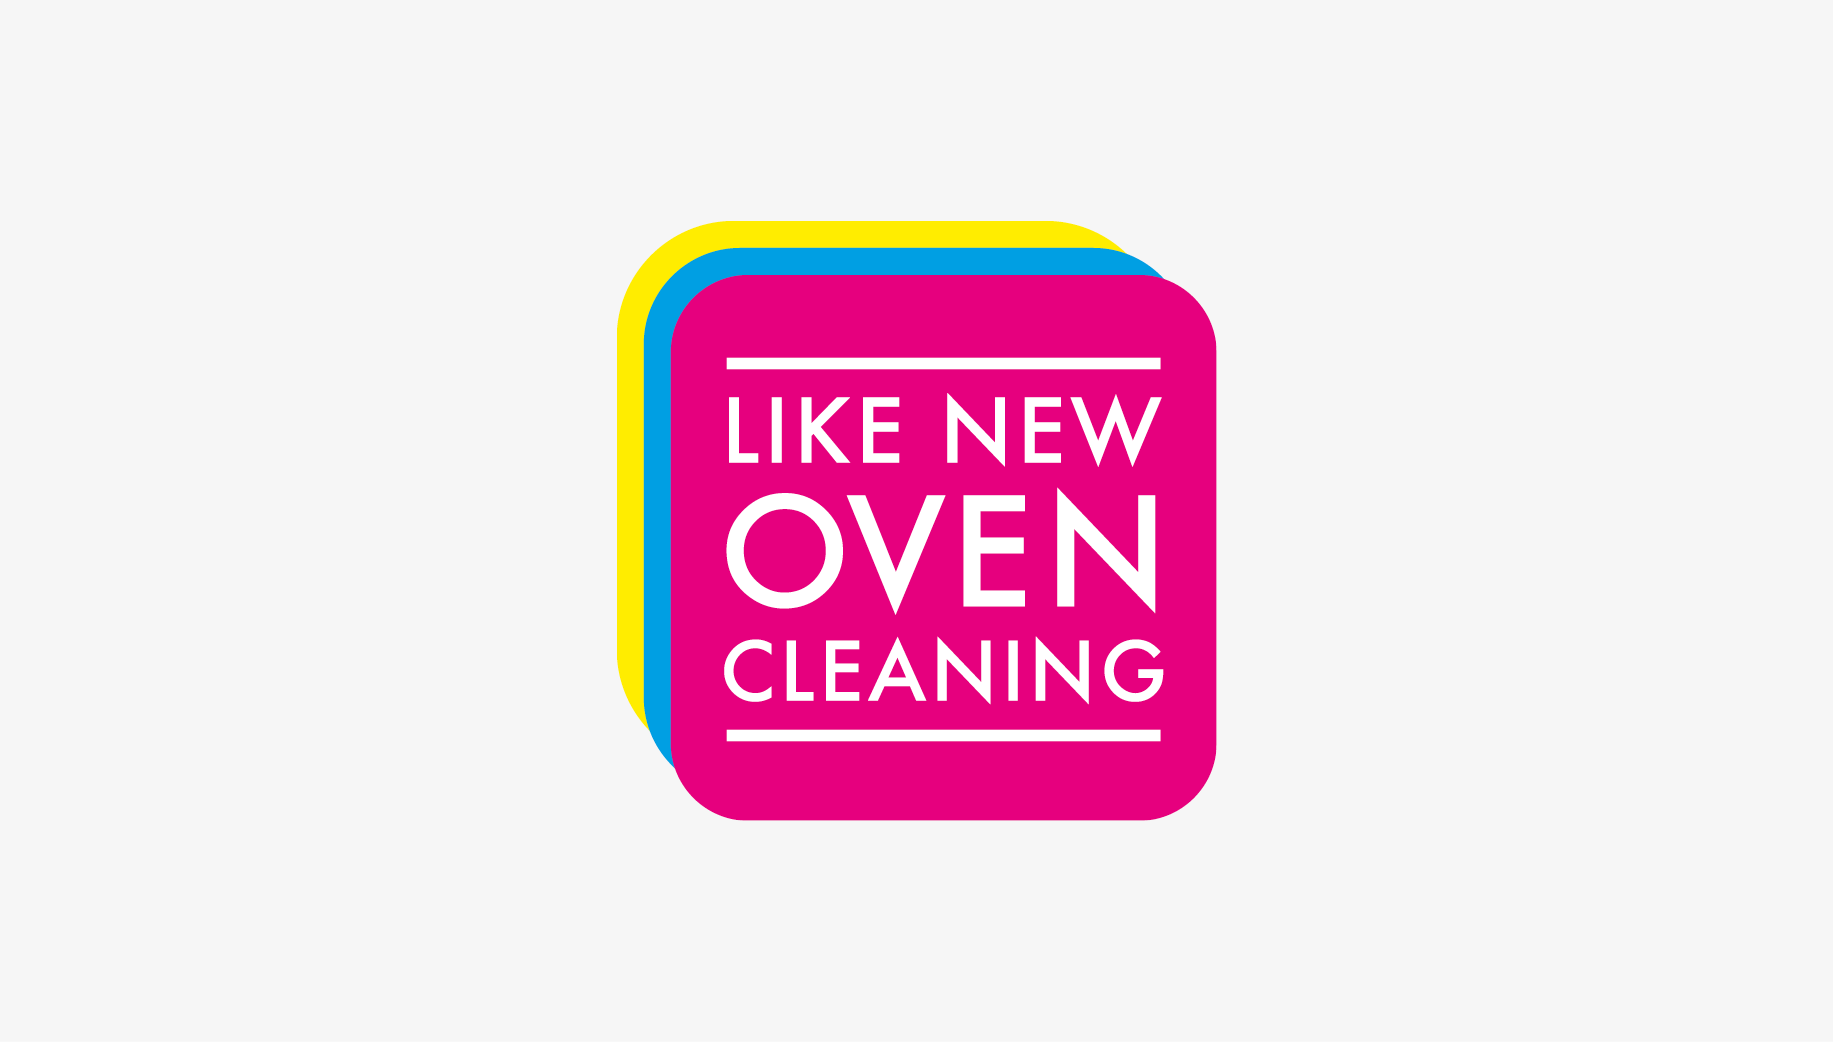 Like New Oven Cleaning logo